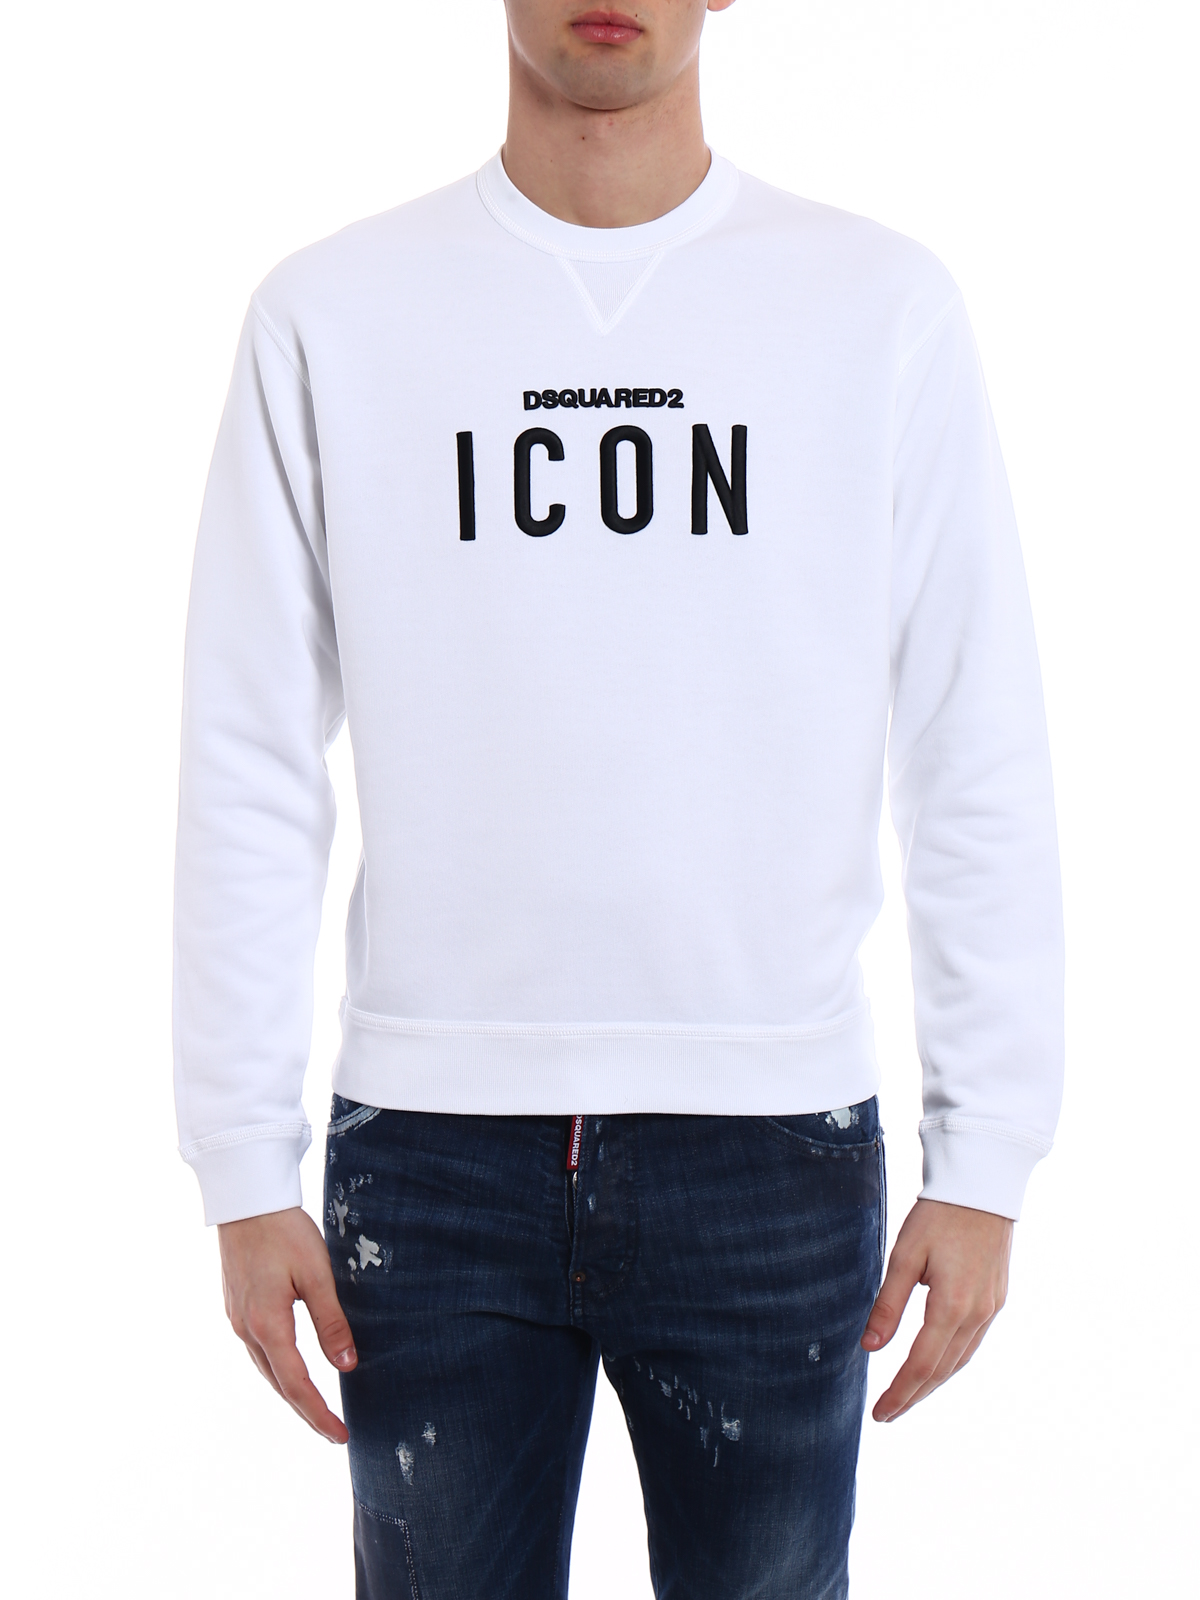 Icon embroidered patch sweatshirt